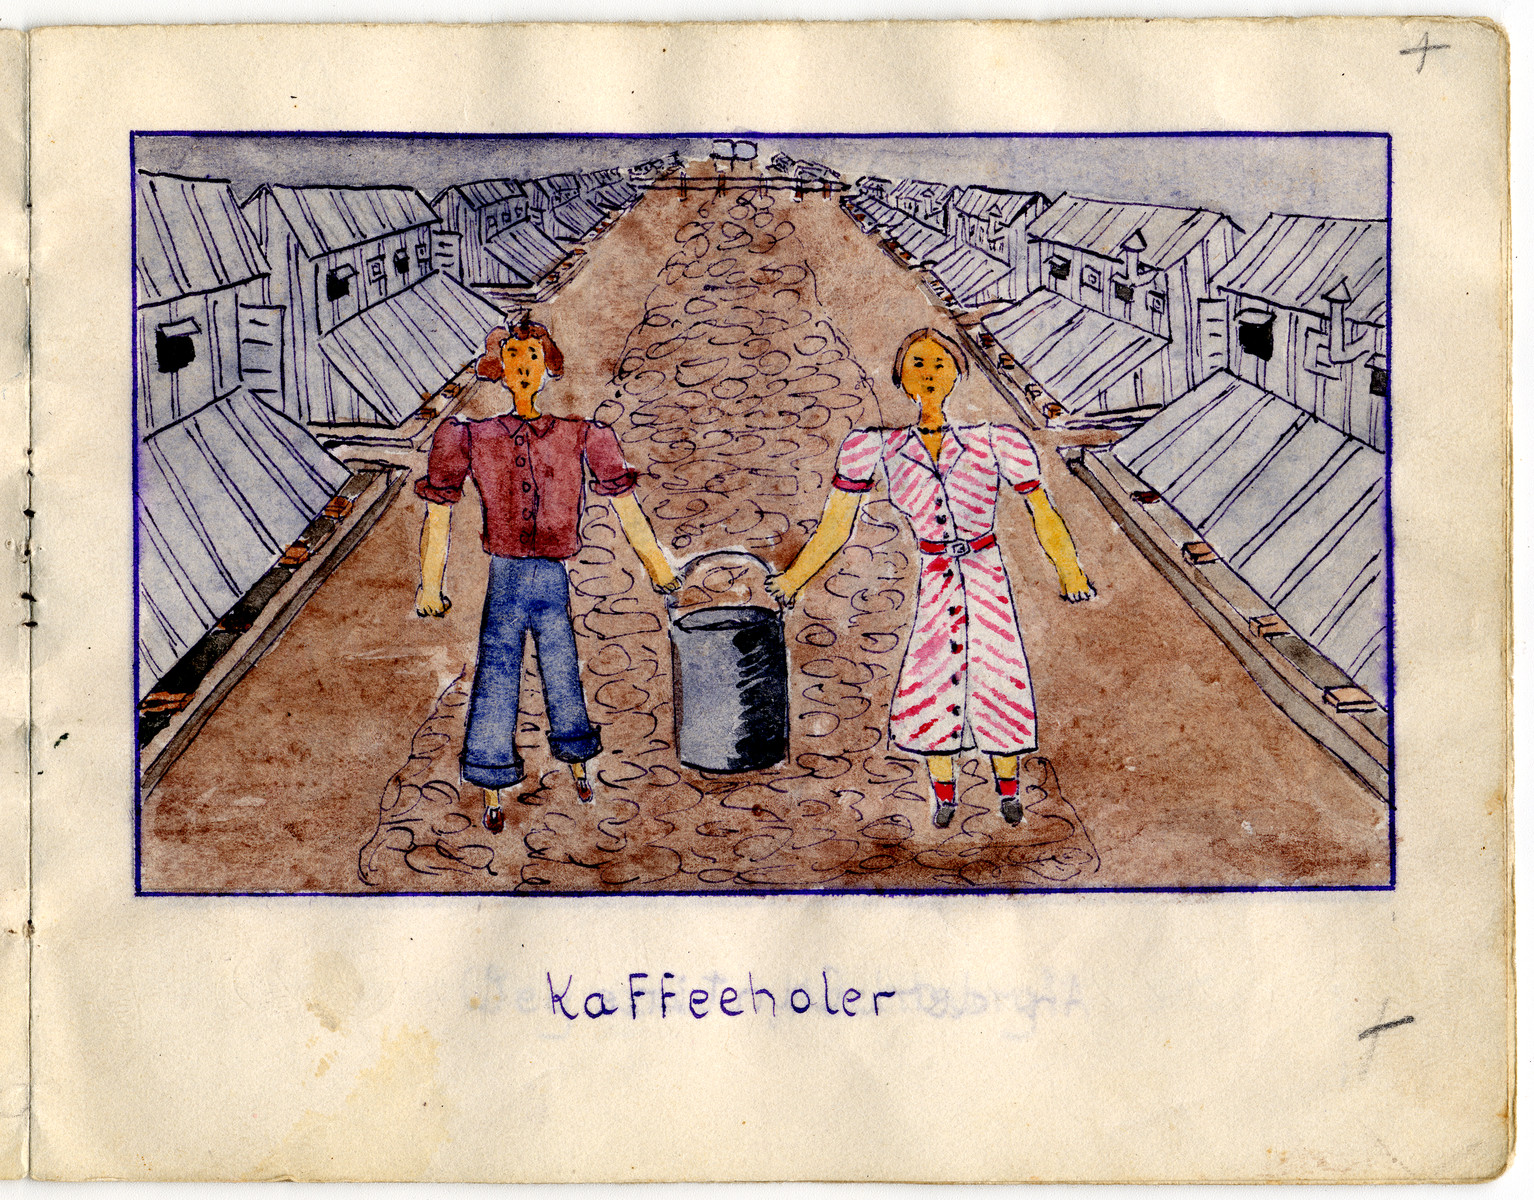 Page from the memoirs of Camp de Gurs illustrated by Eva Liebhold.  This page shows two prisoners carrying a large pot of coffee.